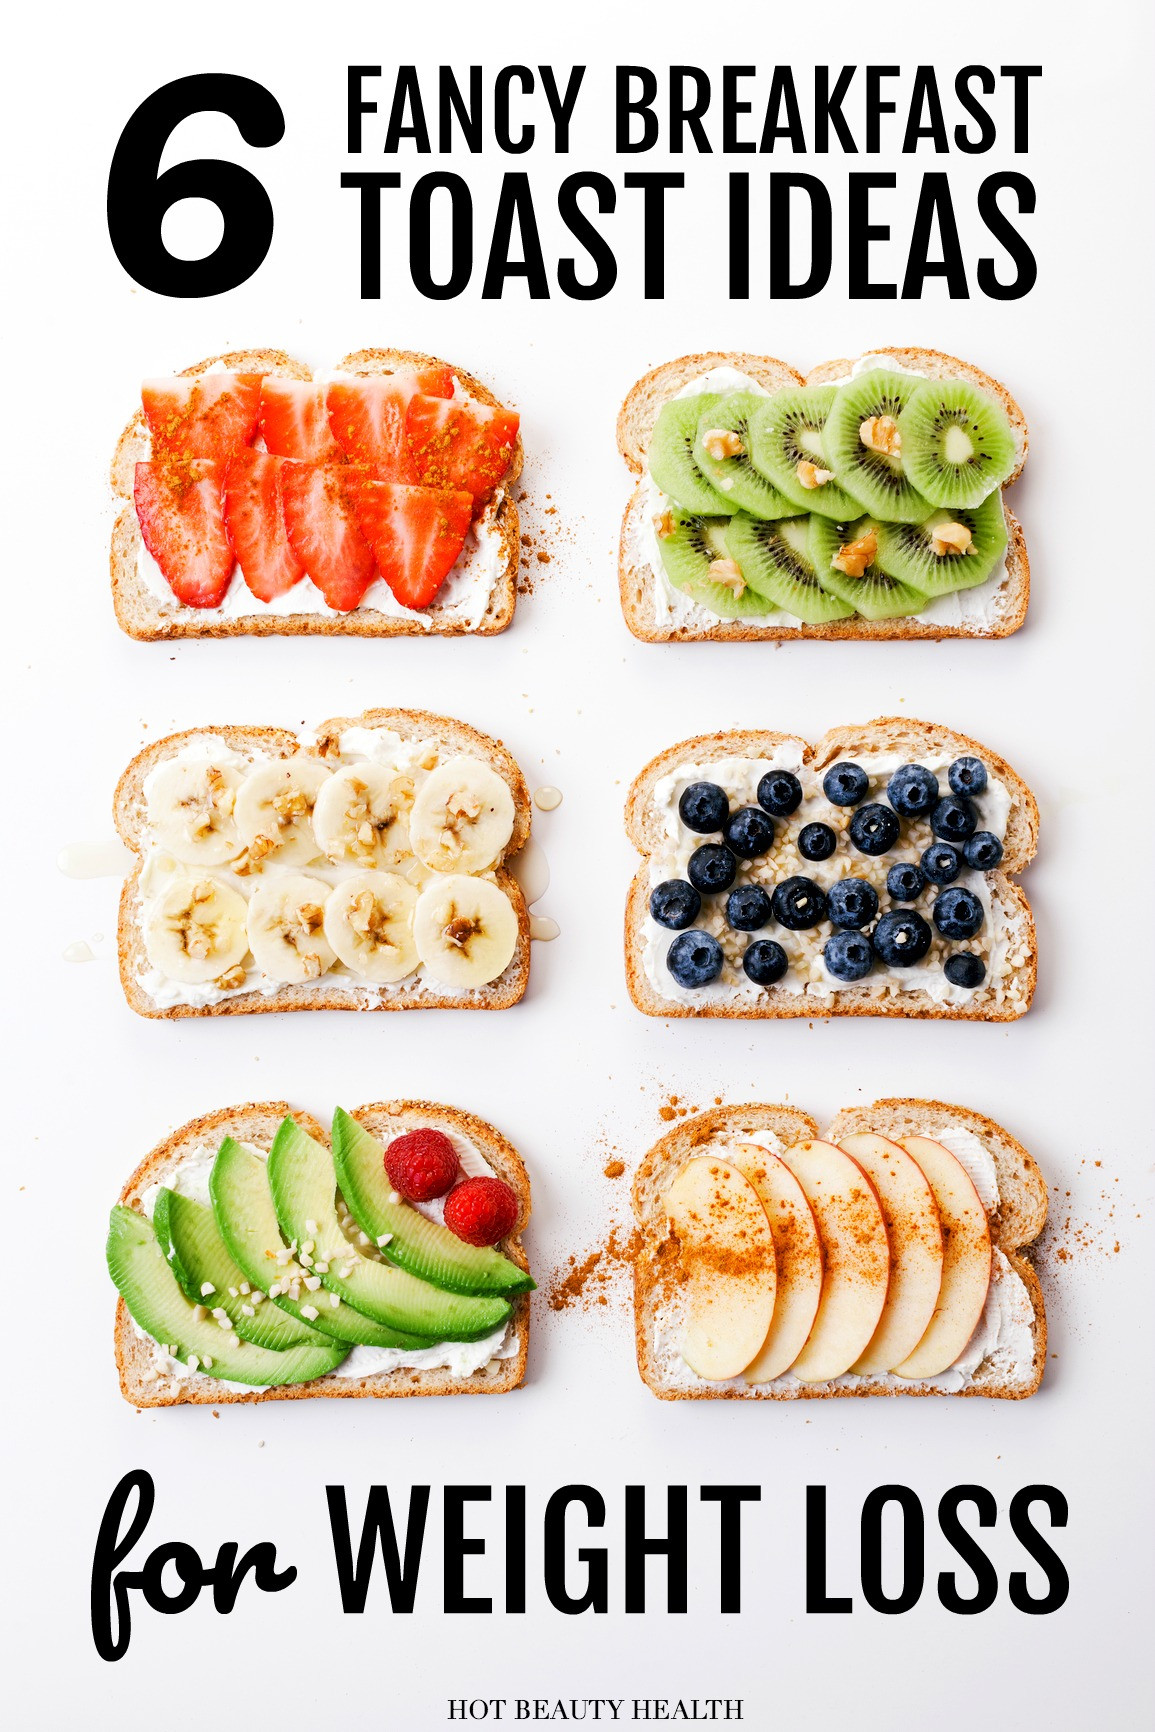 Healthy Breakfast For Losing Weight  6 Easy & Creative Ways to Fancy Up Breakfast Toasts Hot